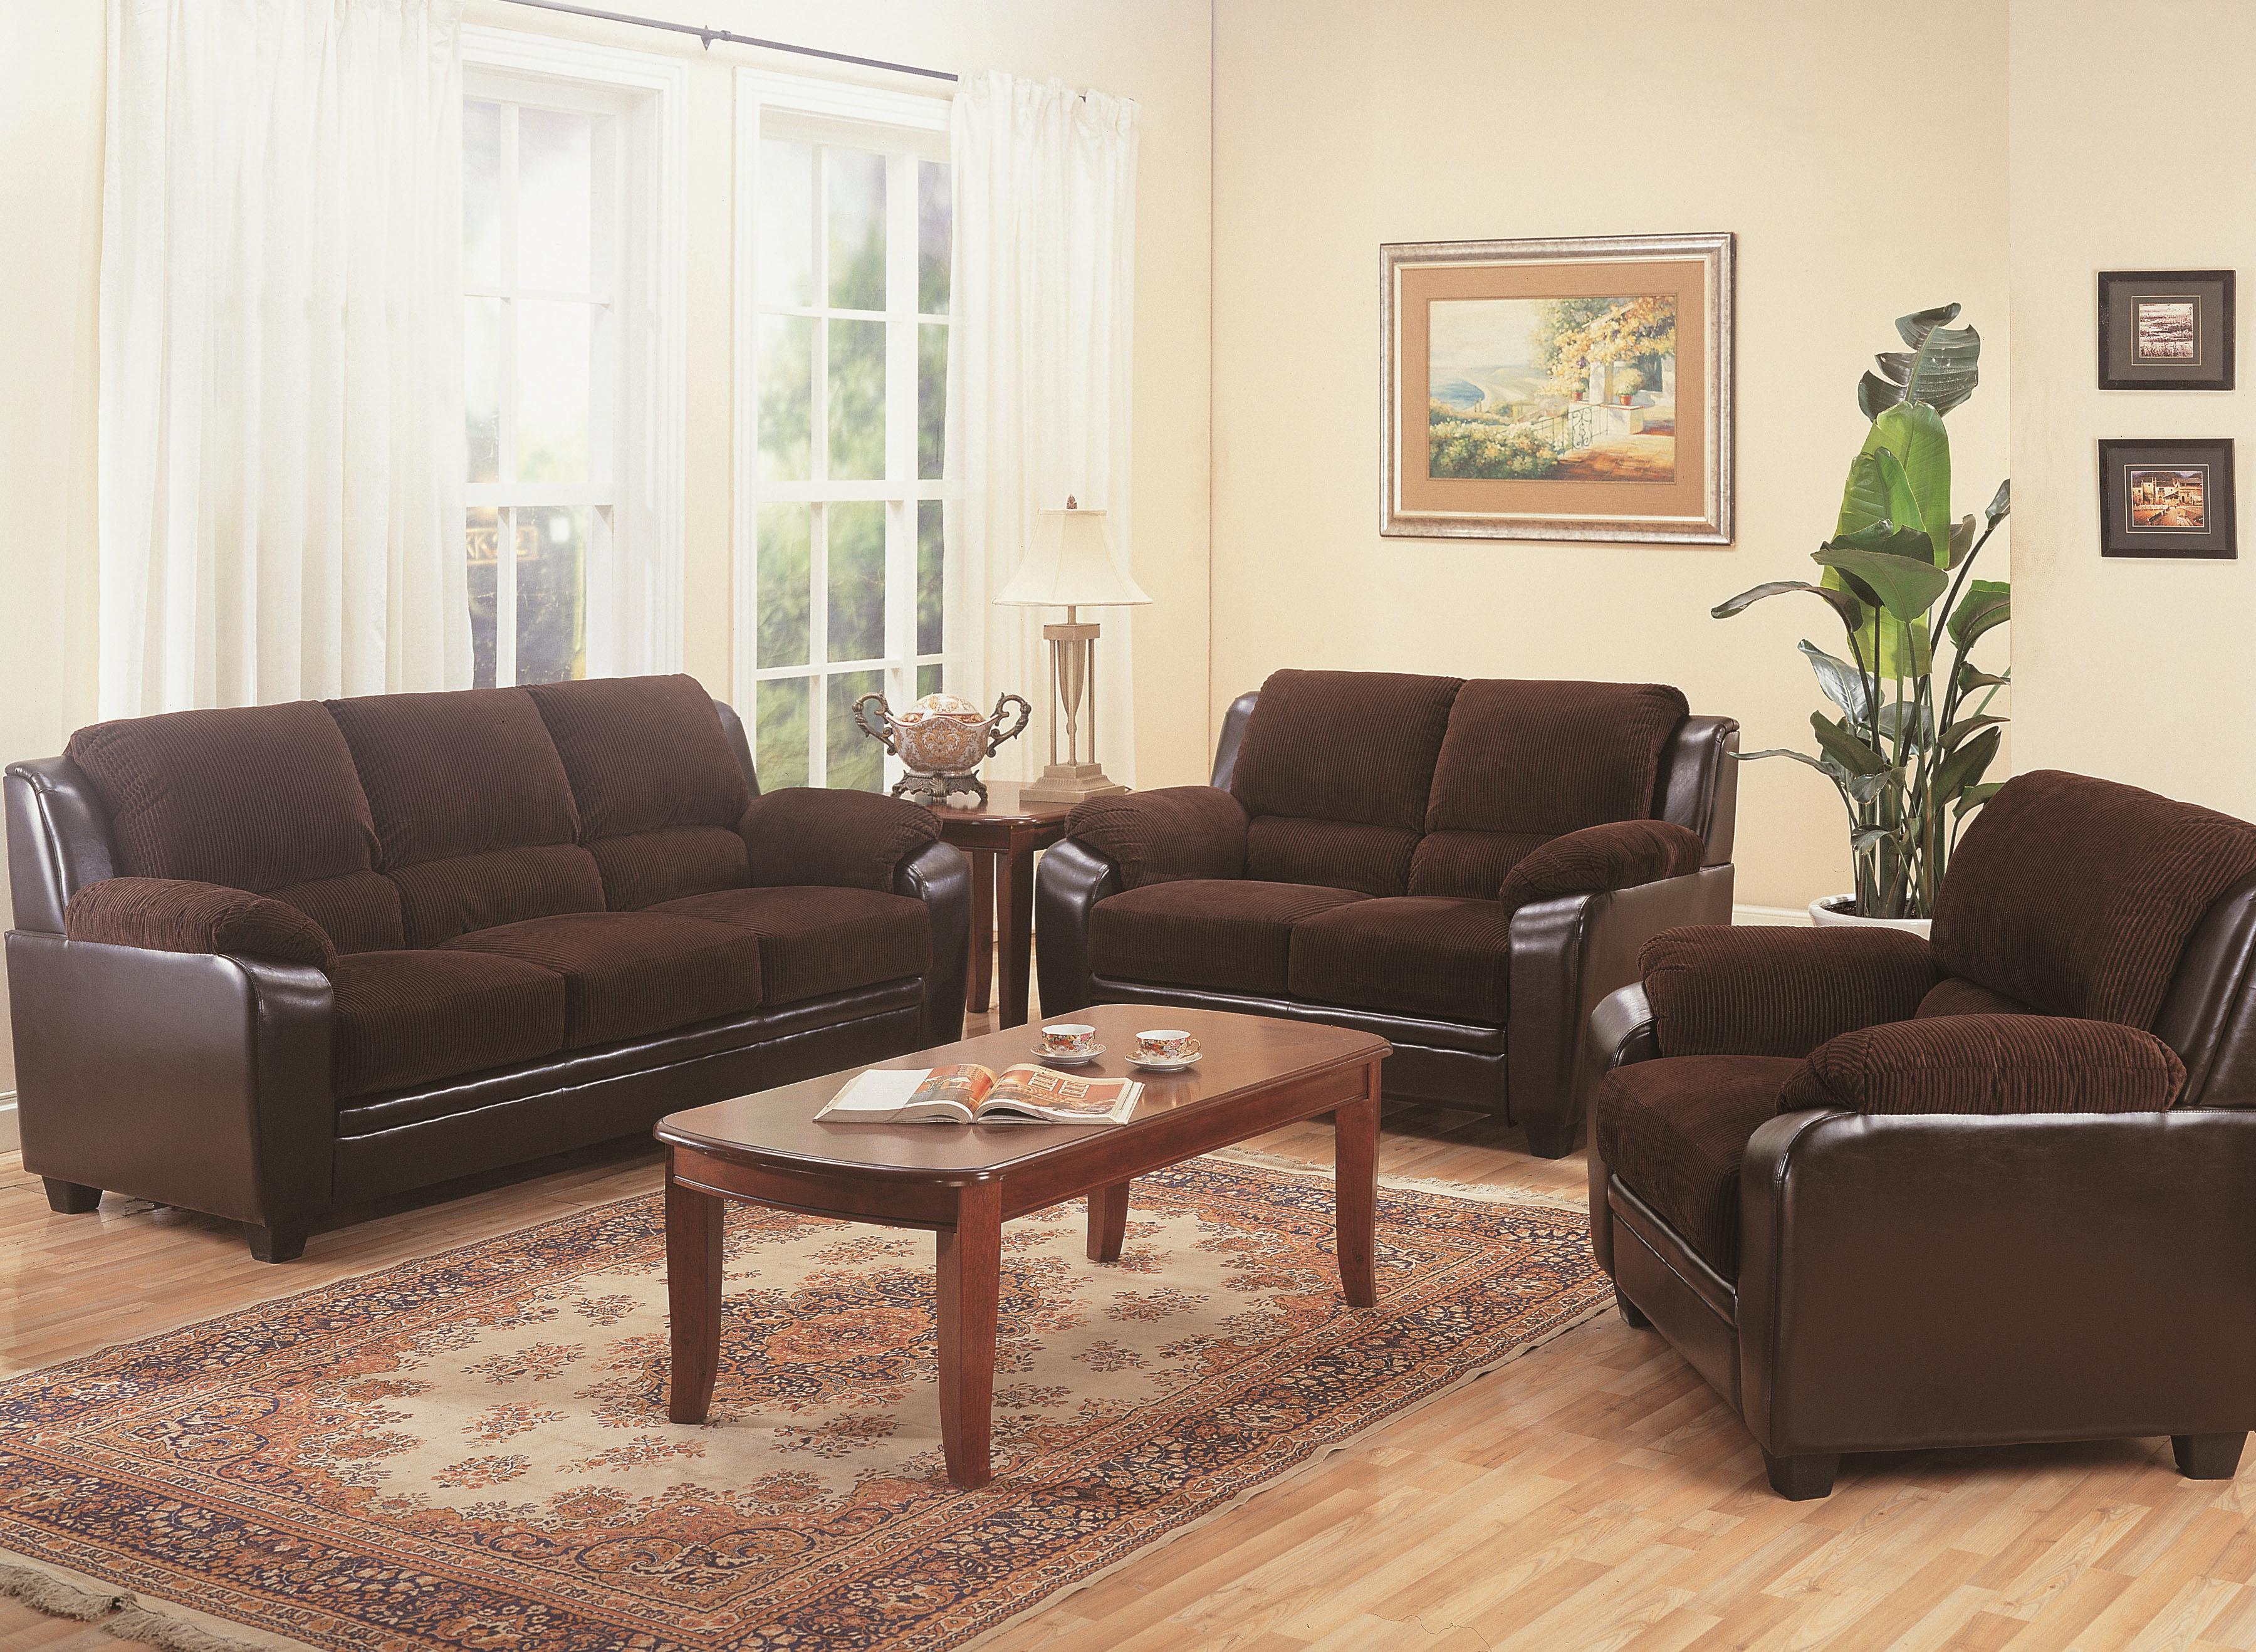 Coaster monika stationary sofa with wood feet charleston furniture sofa